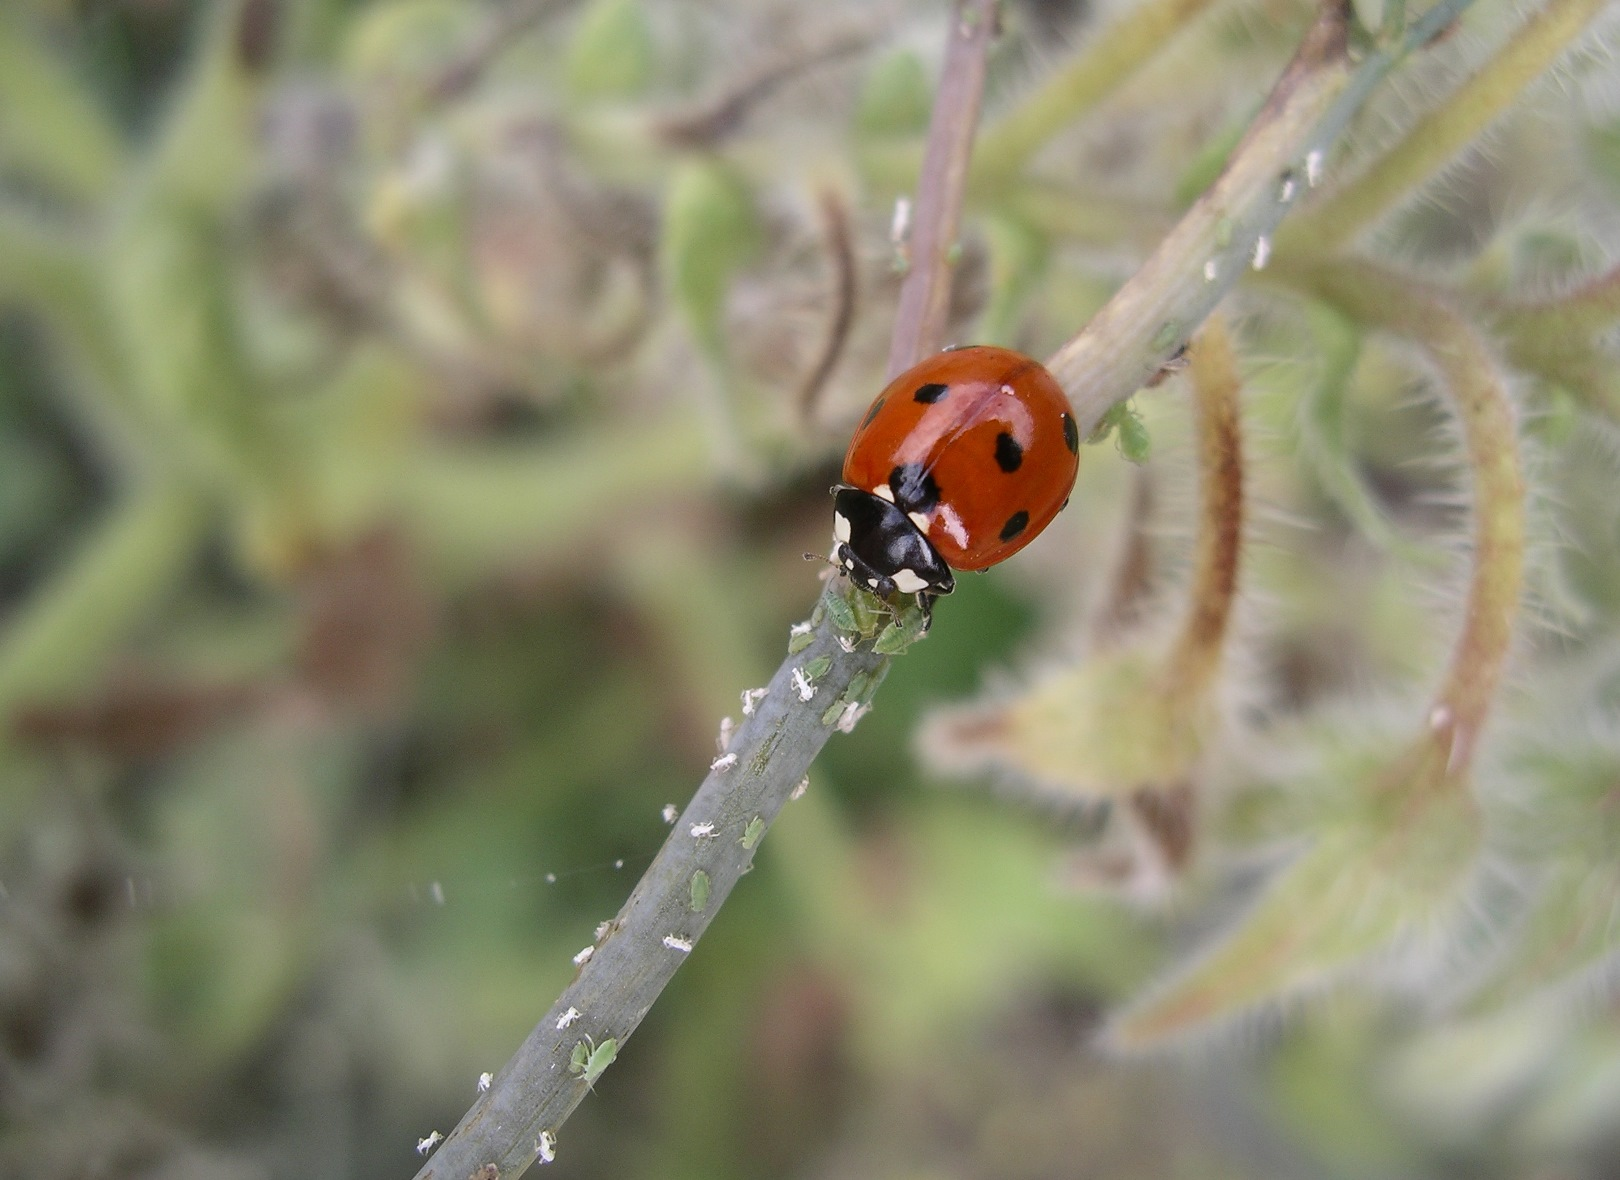 An adult 7-spot ladybird feeding on aphids. The ladybird citizen science challenge uses Twitter for engagement and education.